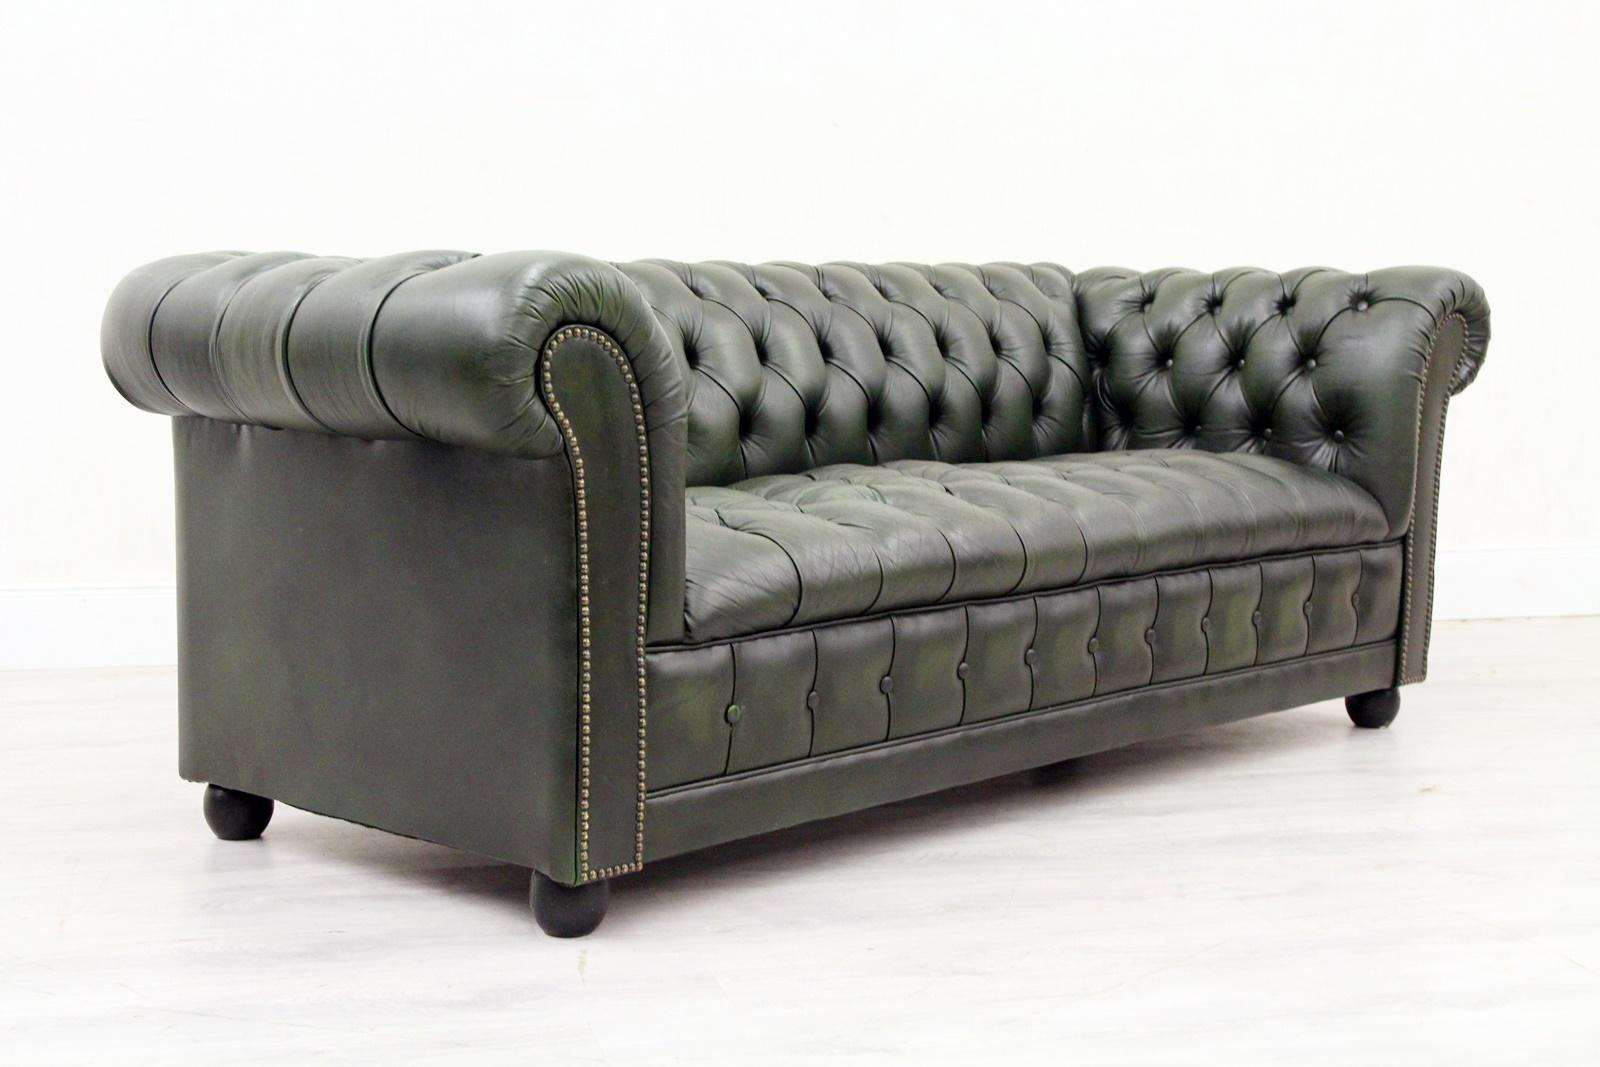 Couch Und Sessel Chesterfield Sofa Sessel Leder Antik Fernsehsessel English 3 2 1